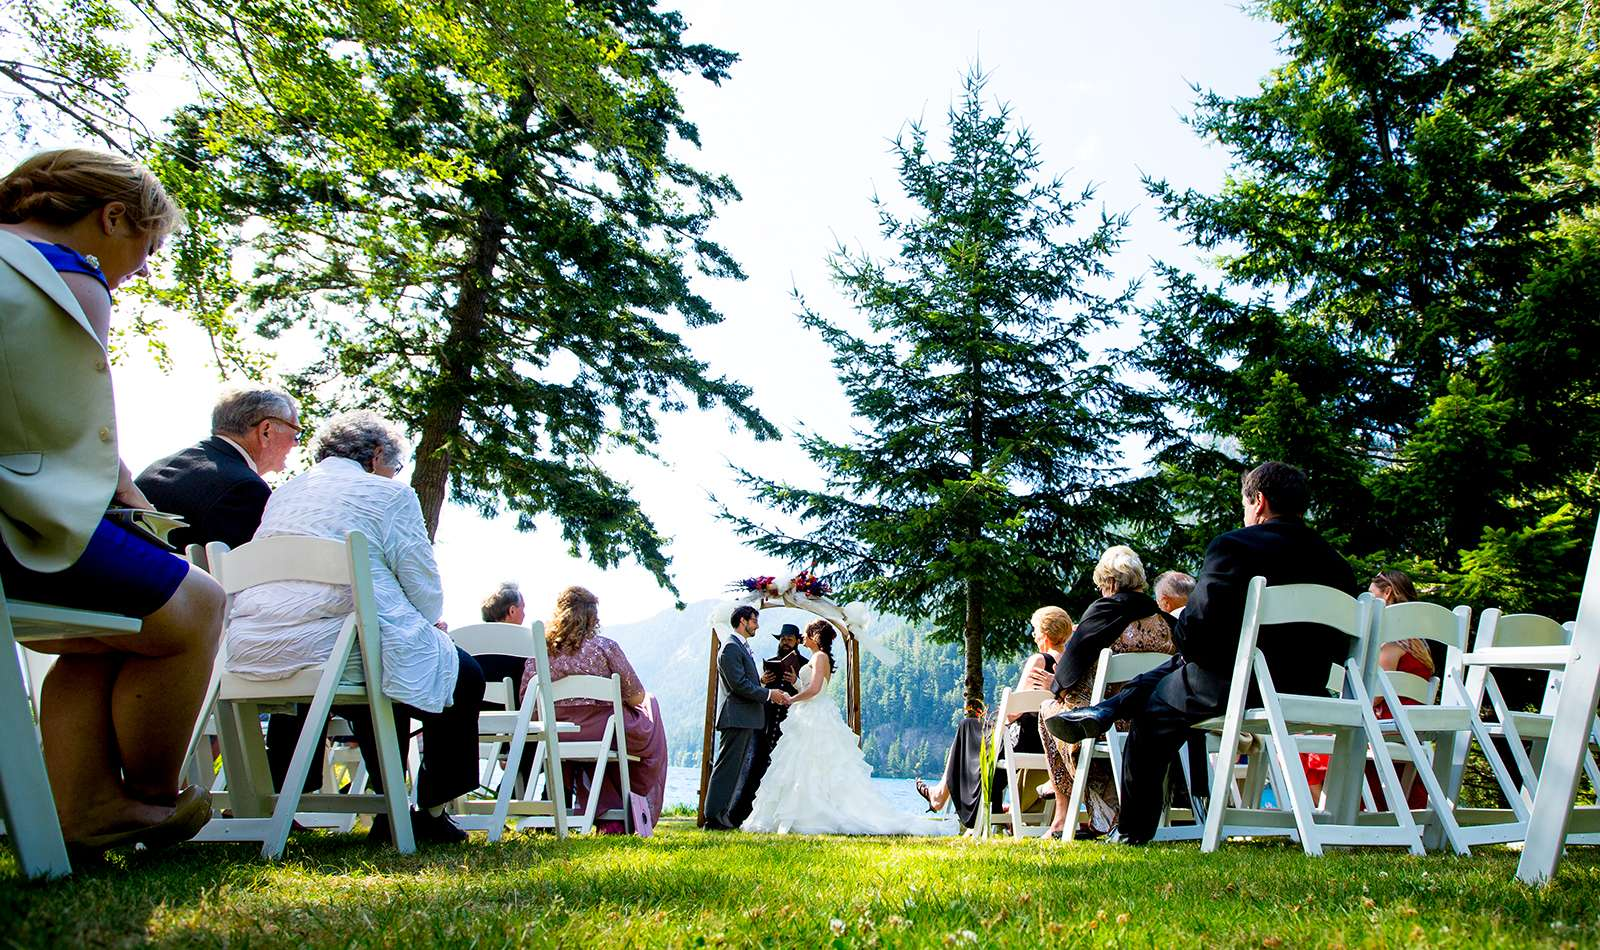 The wedding of Genevieve & Andrew at Lake Crescent Lodge near Port Angeles, Washington. (Photography by Scott Eklund /Red Box Pictures)